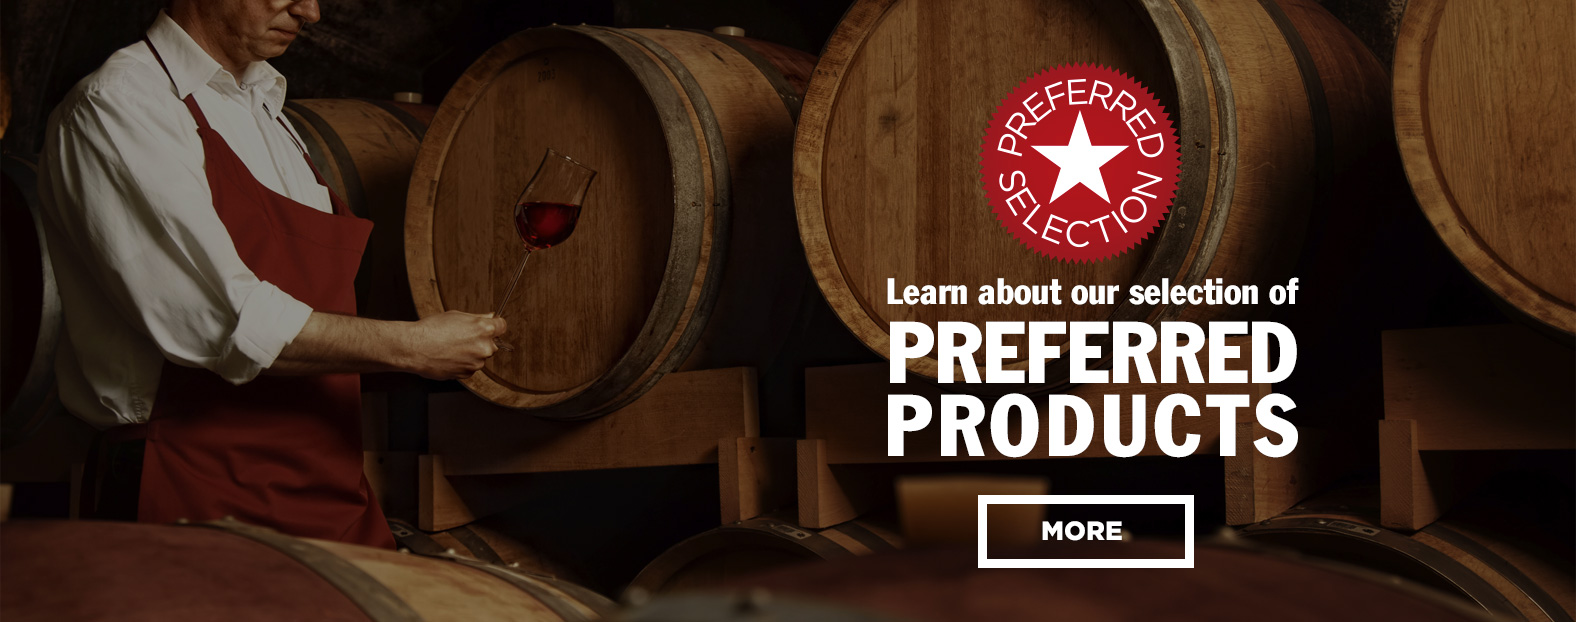 Preferred Carousel - Our Preferred Distilleries, Brewers and More